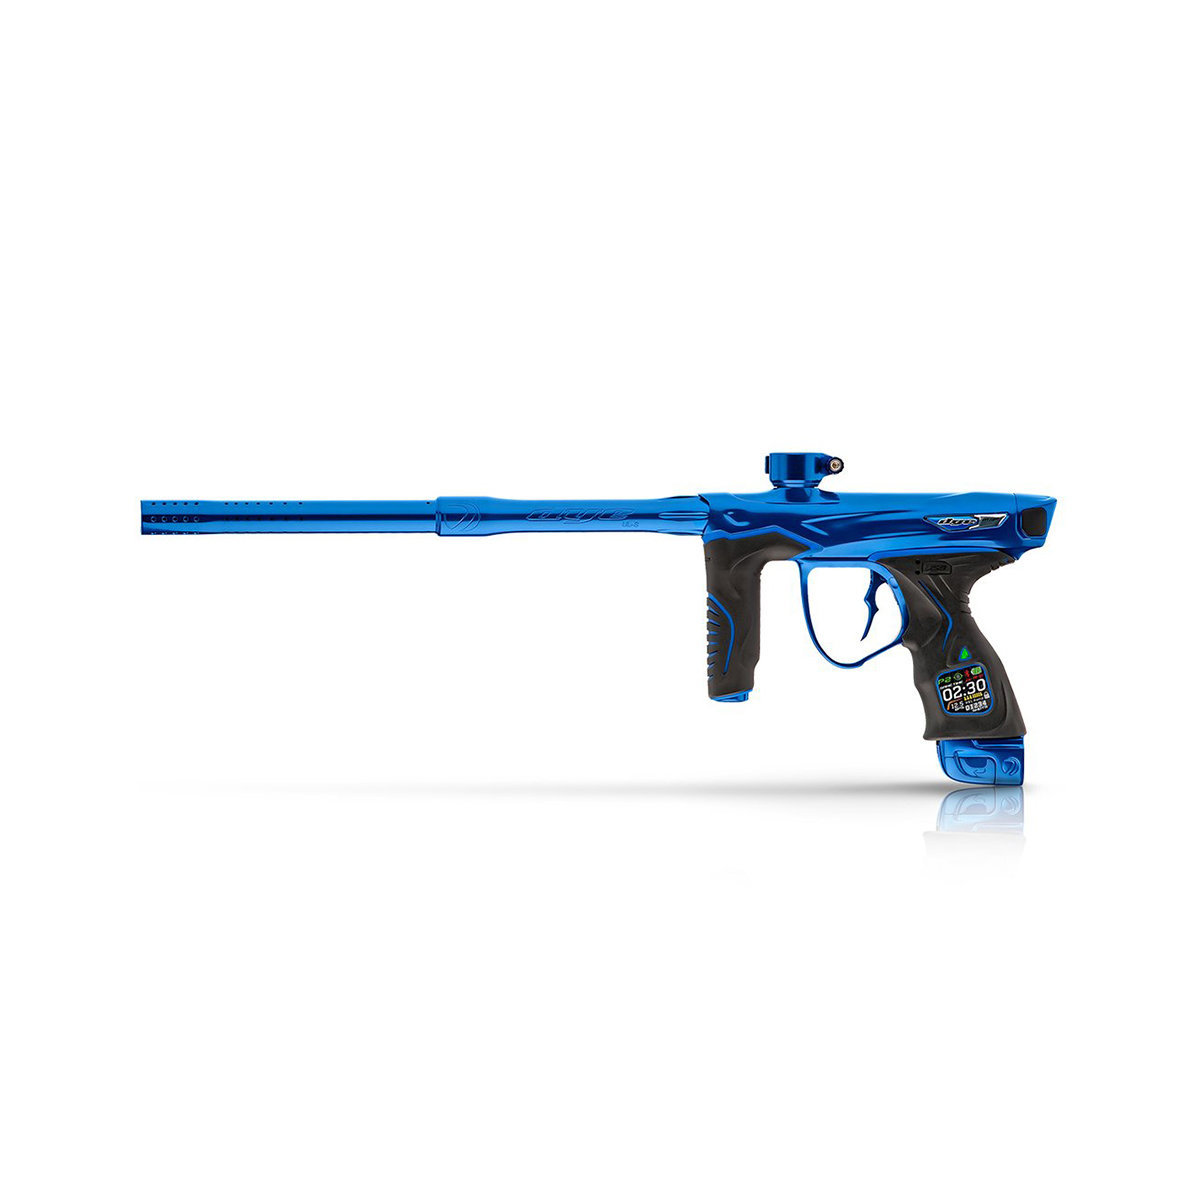 View larger image of Dye M3+ Paintball Gun